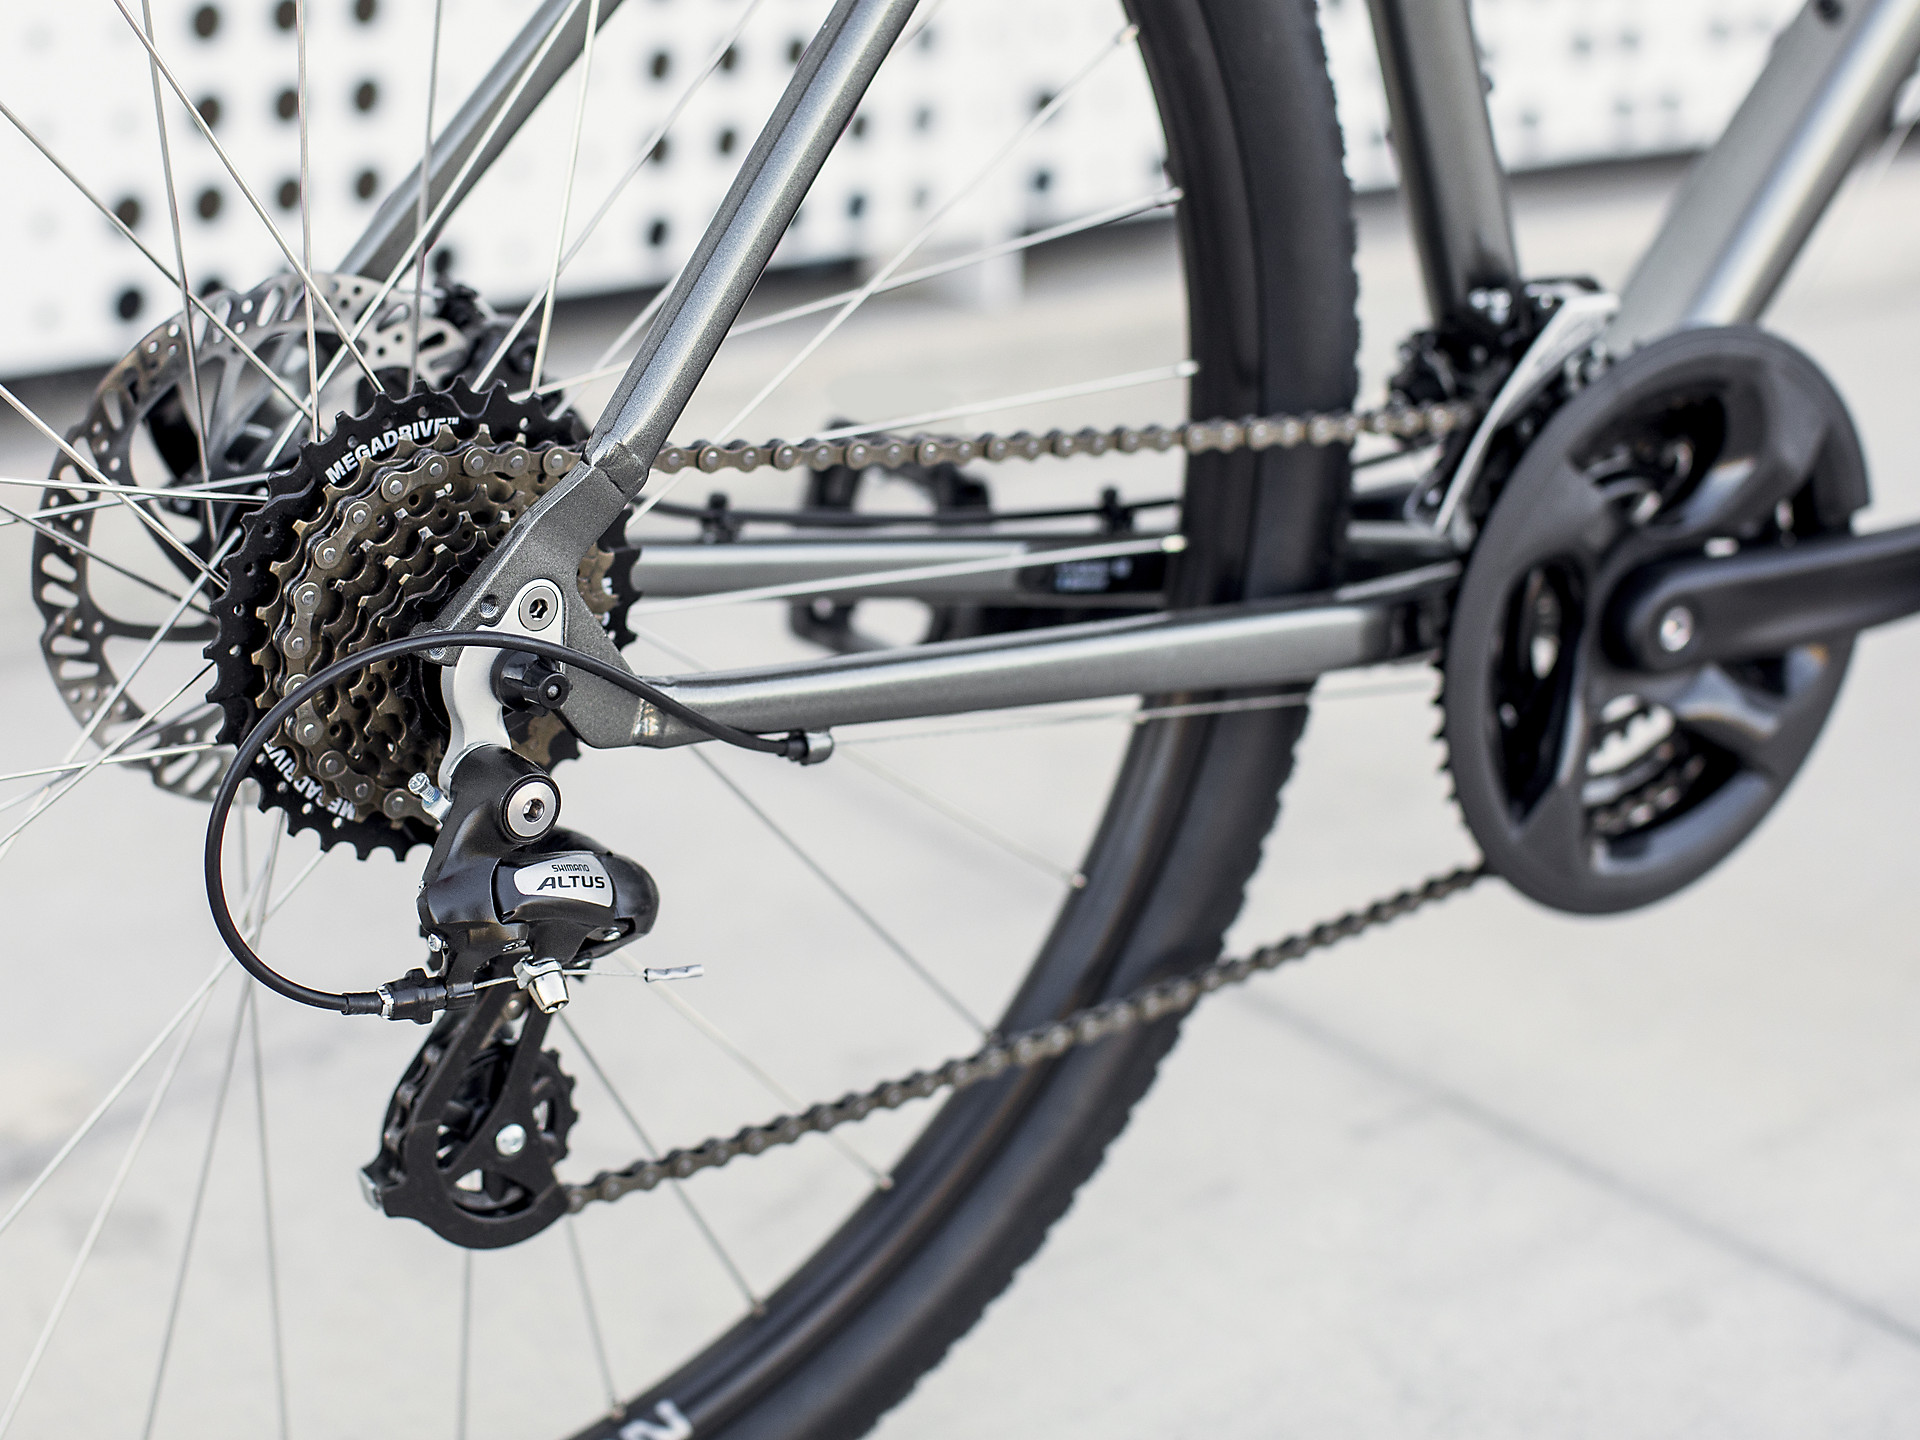 Trek Verve 1 Disc brakes with shimano gearing